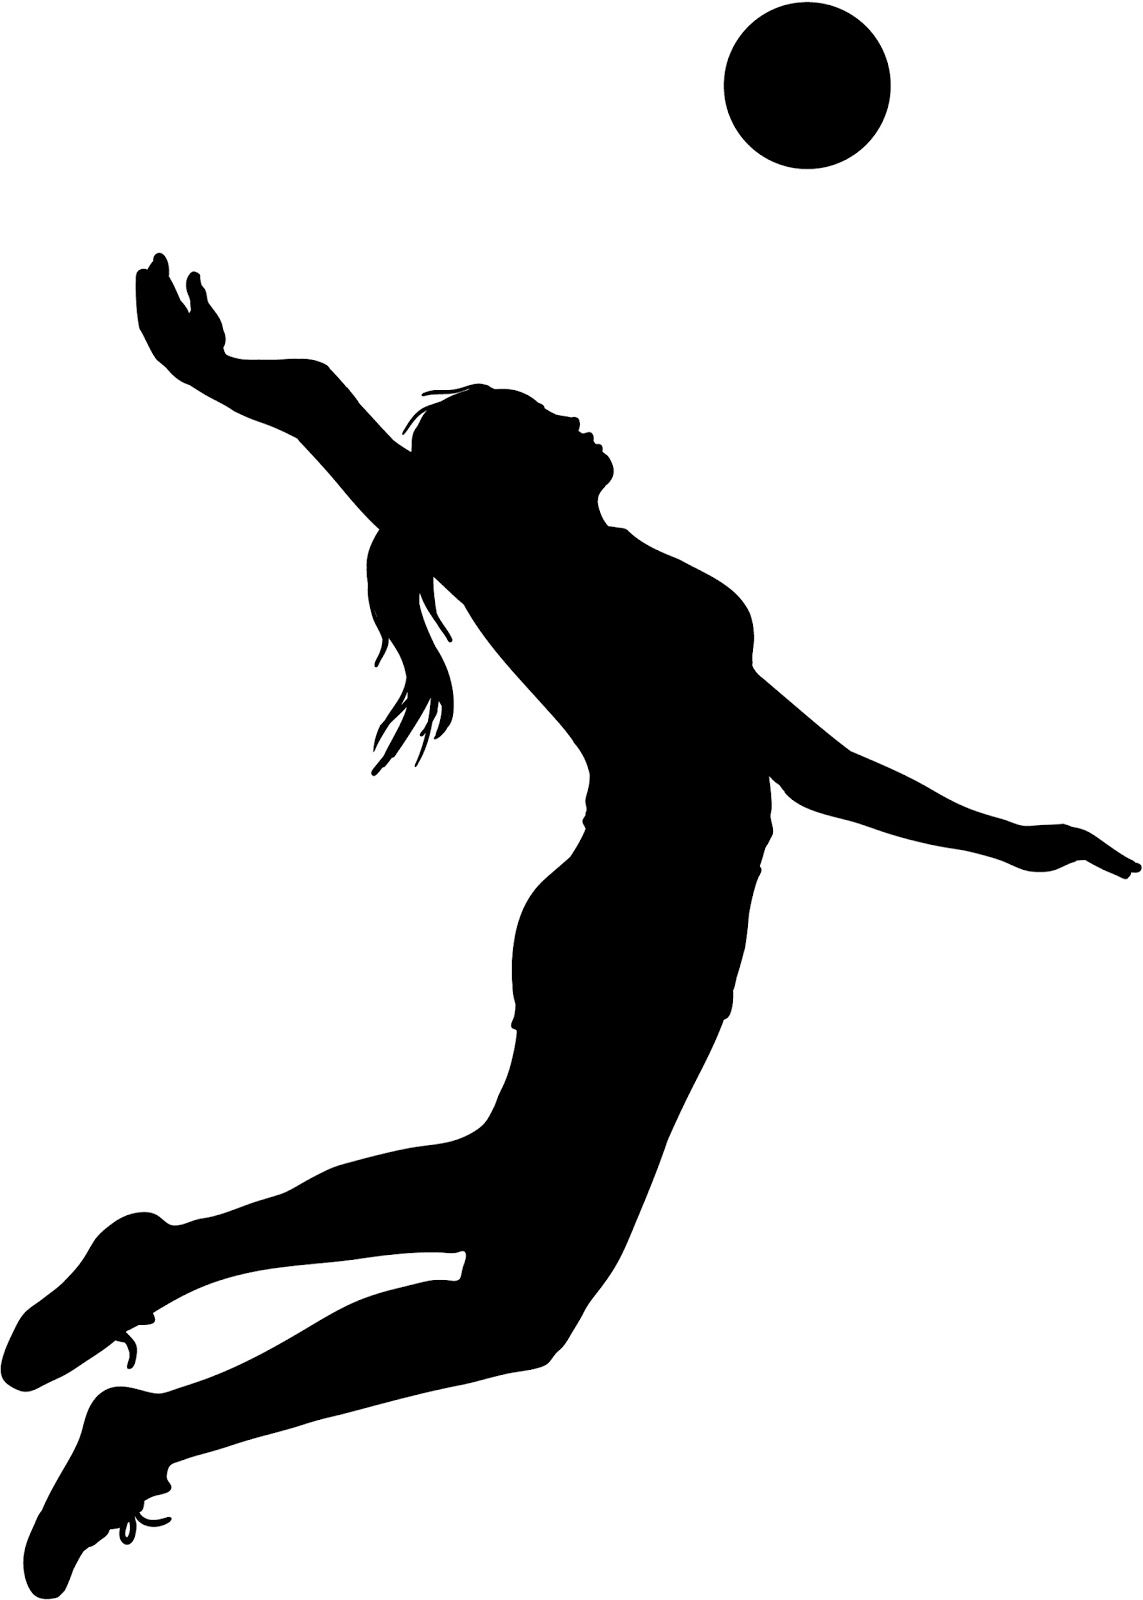 Pin By Lddphotographiccreations On Svg Volleyball Drawing Olympic Volleyball Volleyball Silhouette